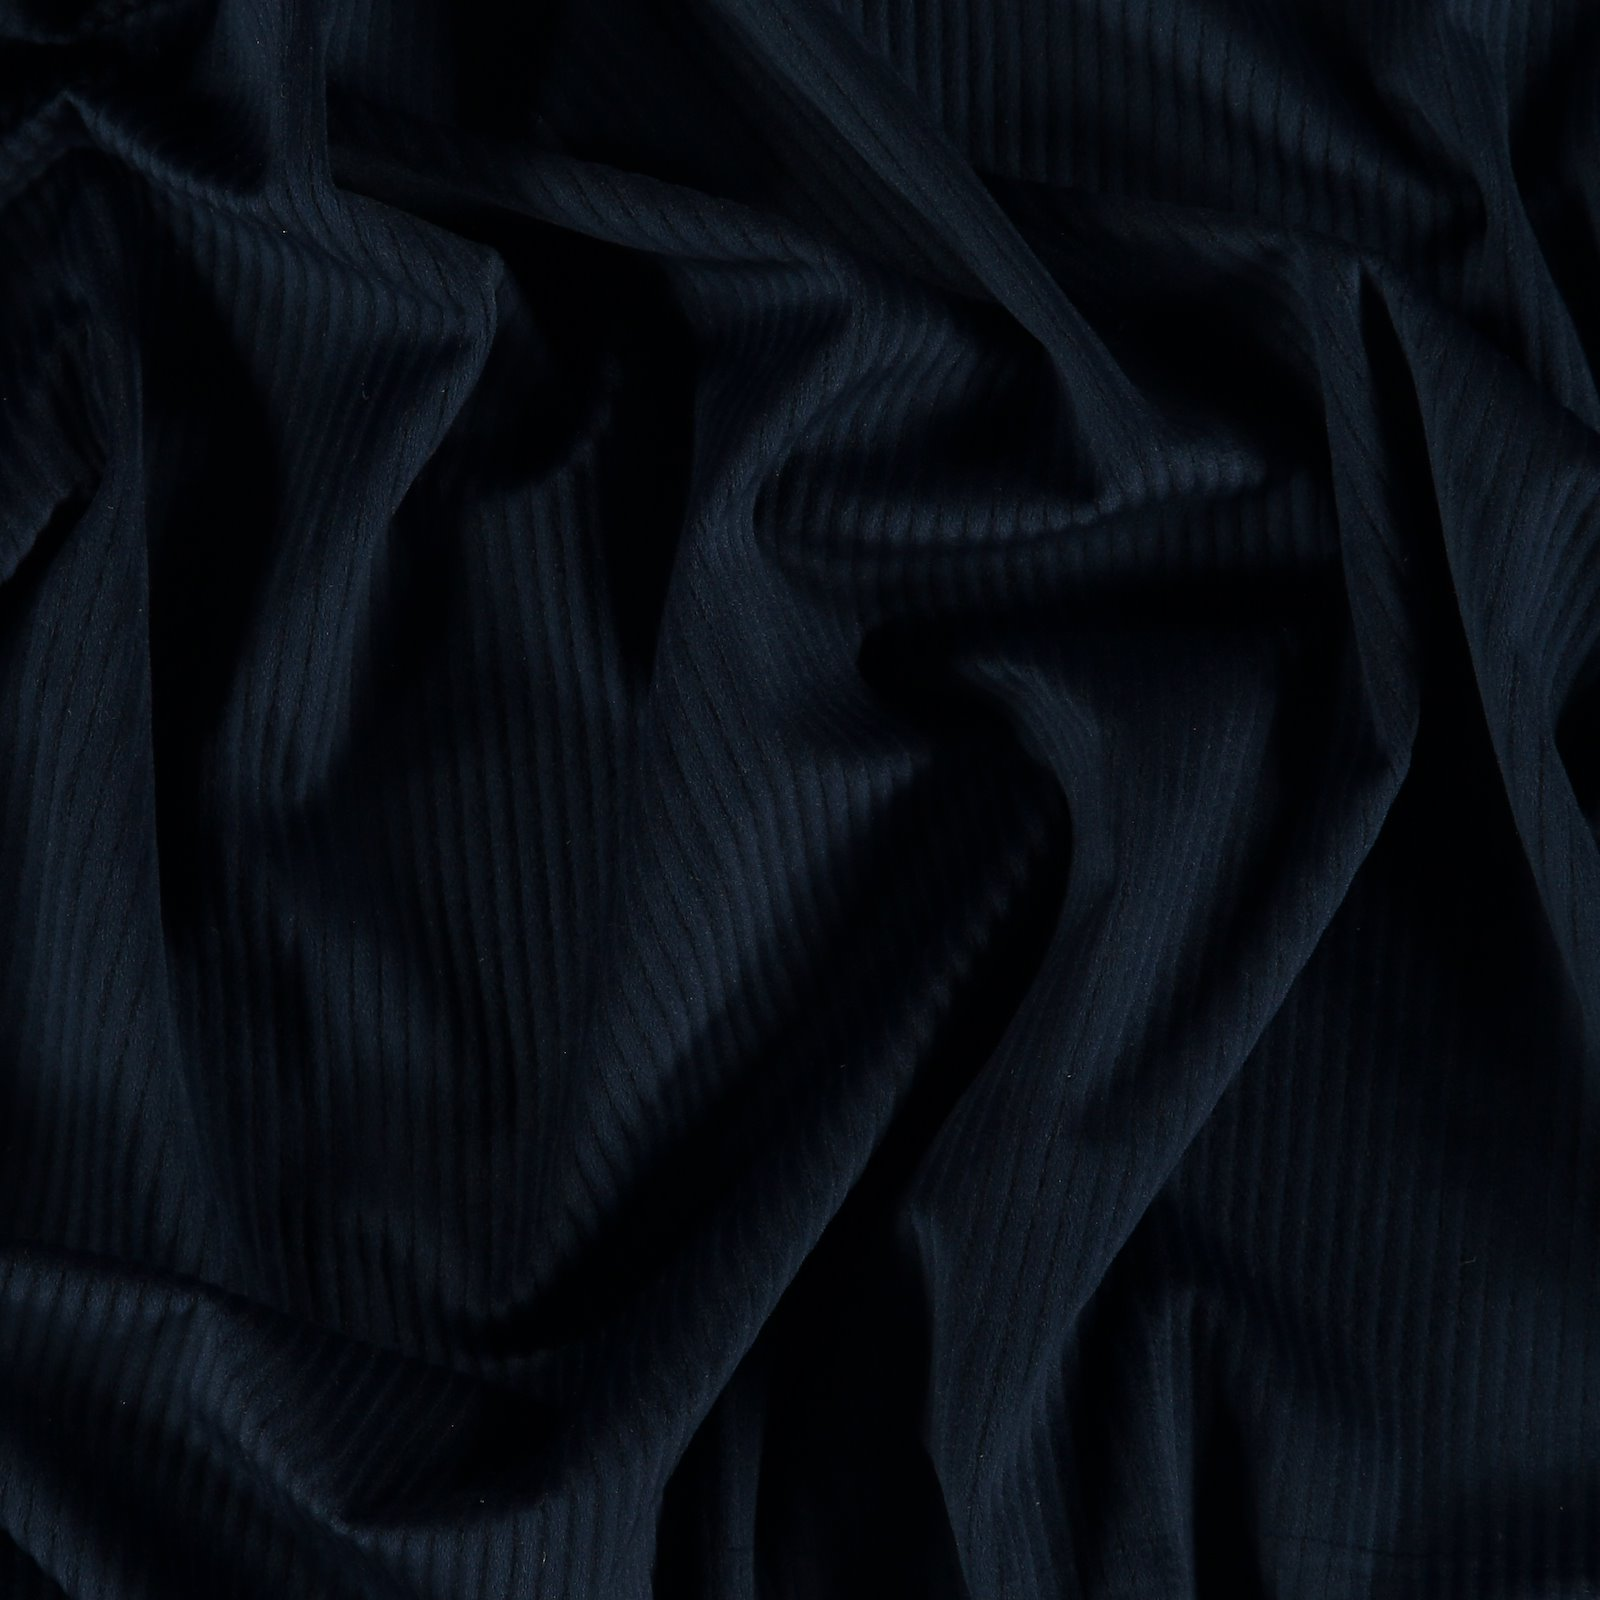 Upholstery micro corduroy 6 wales navy 823899_pack